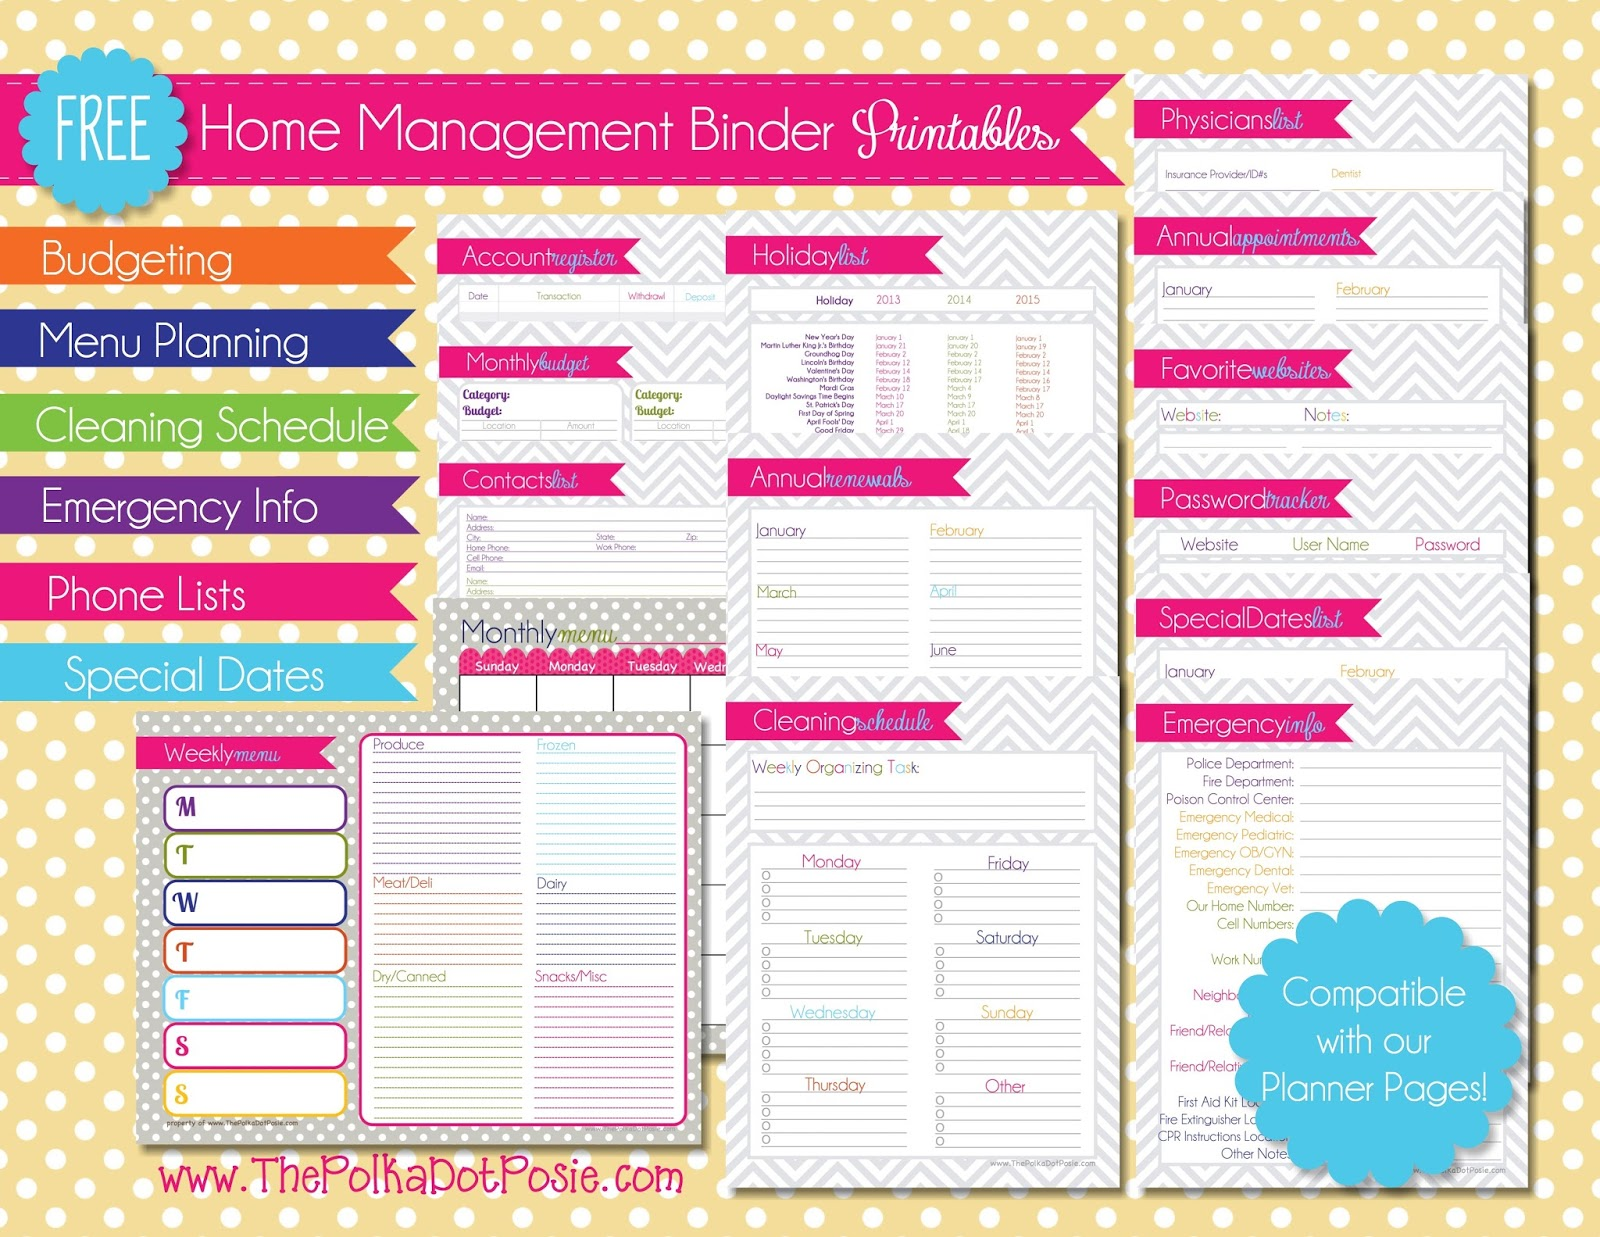 7 Images of Free Printable Home Management Worksheets